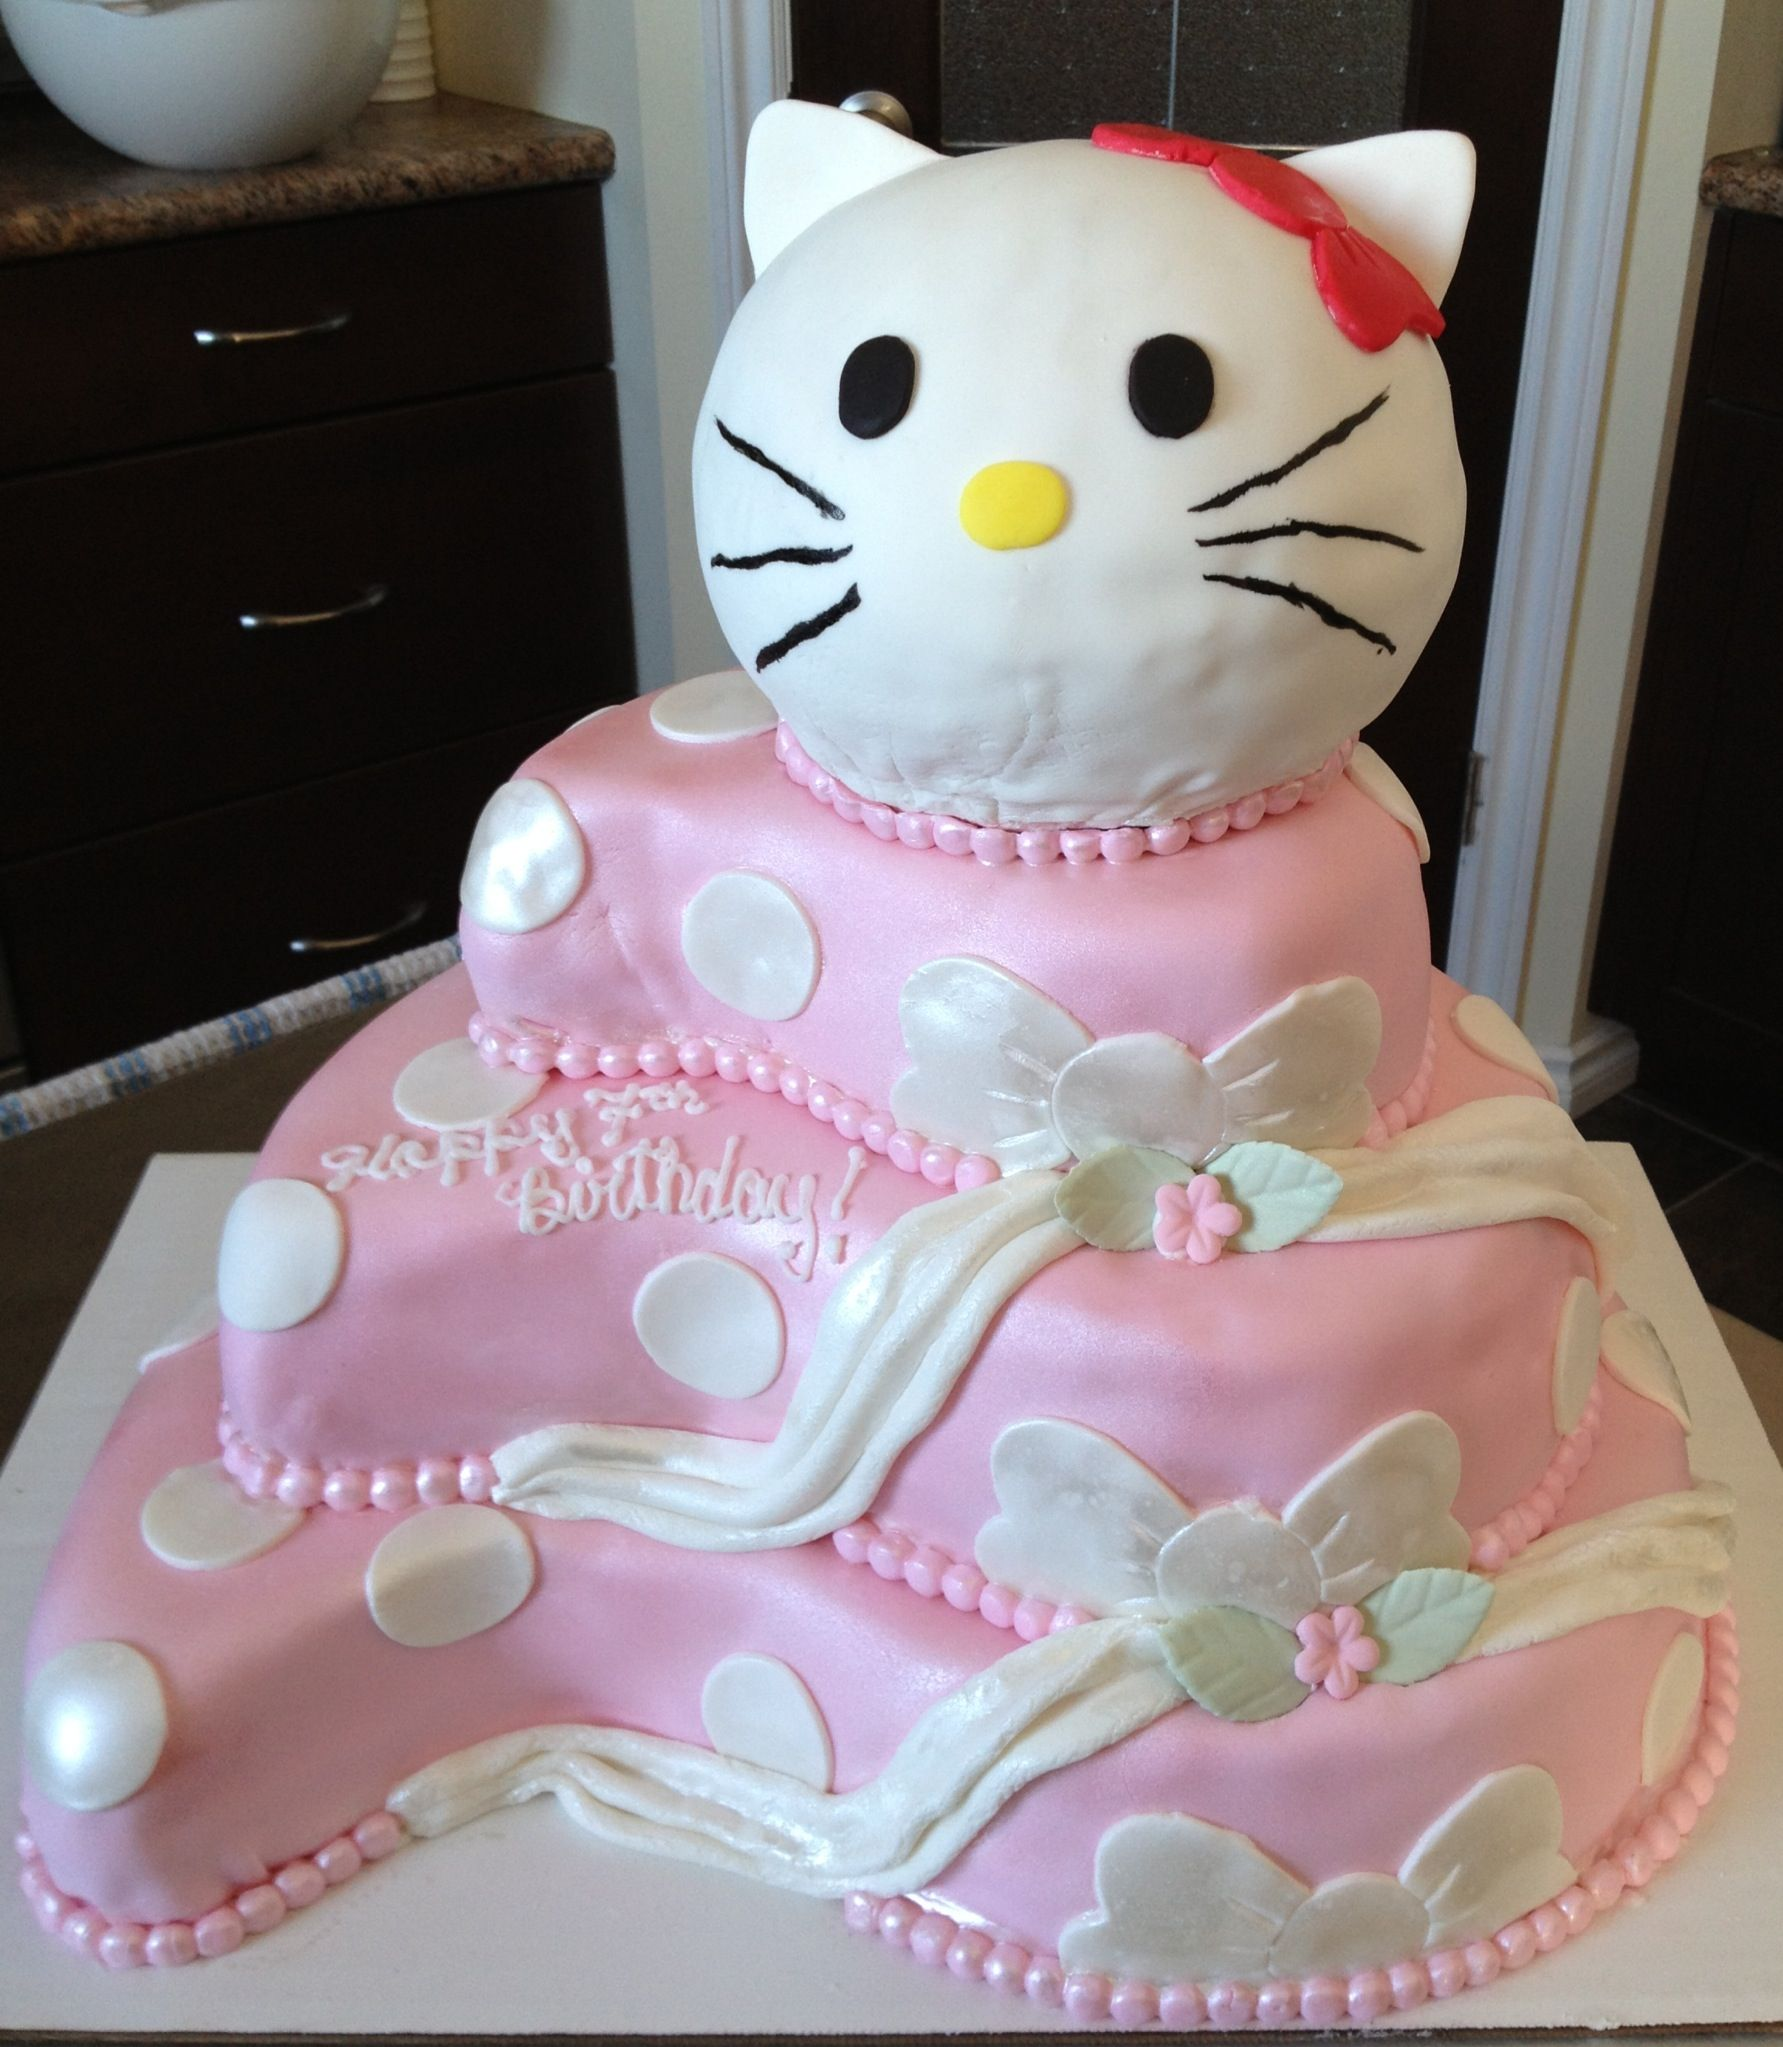 3 Tier Paisley Shaped Birthday Cake With A 3d Hello Kitty Head On